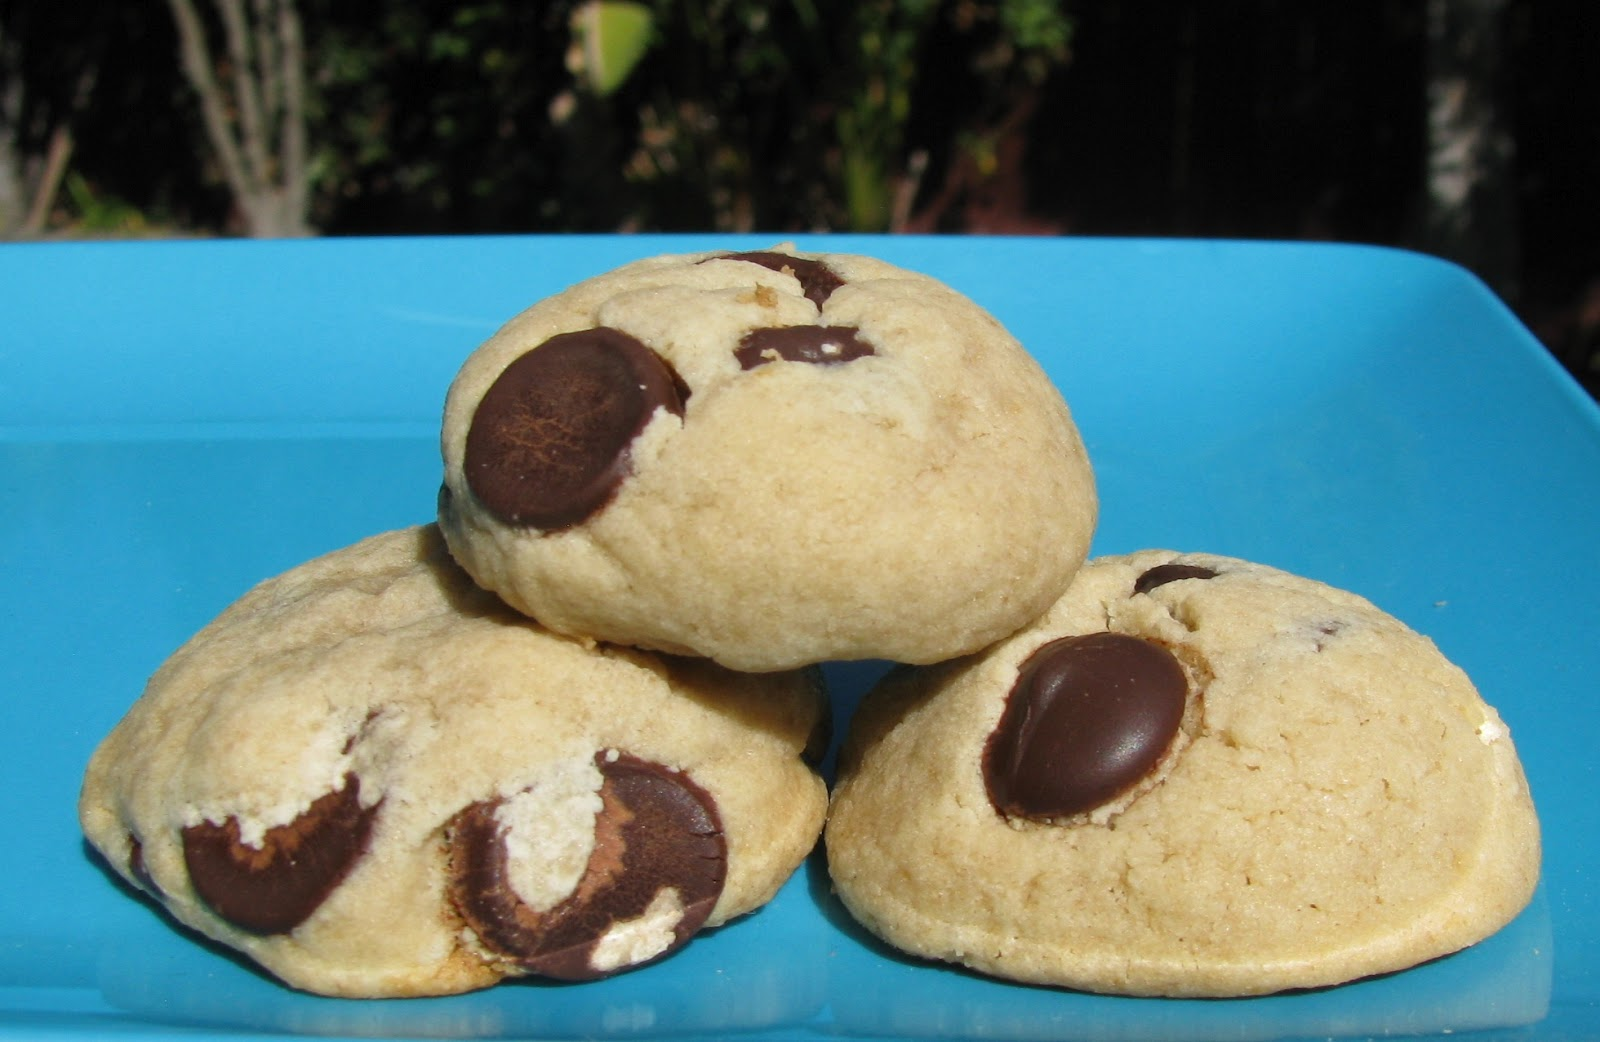 Squishy Chocolate Chip Cookies : Corrie Food: Soft Chocolate Chip Cookies